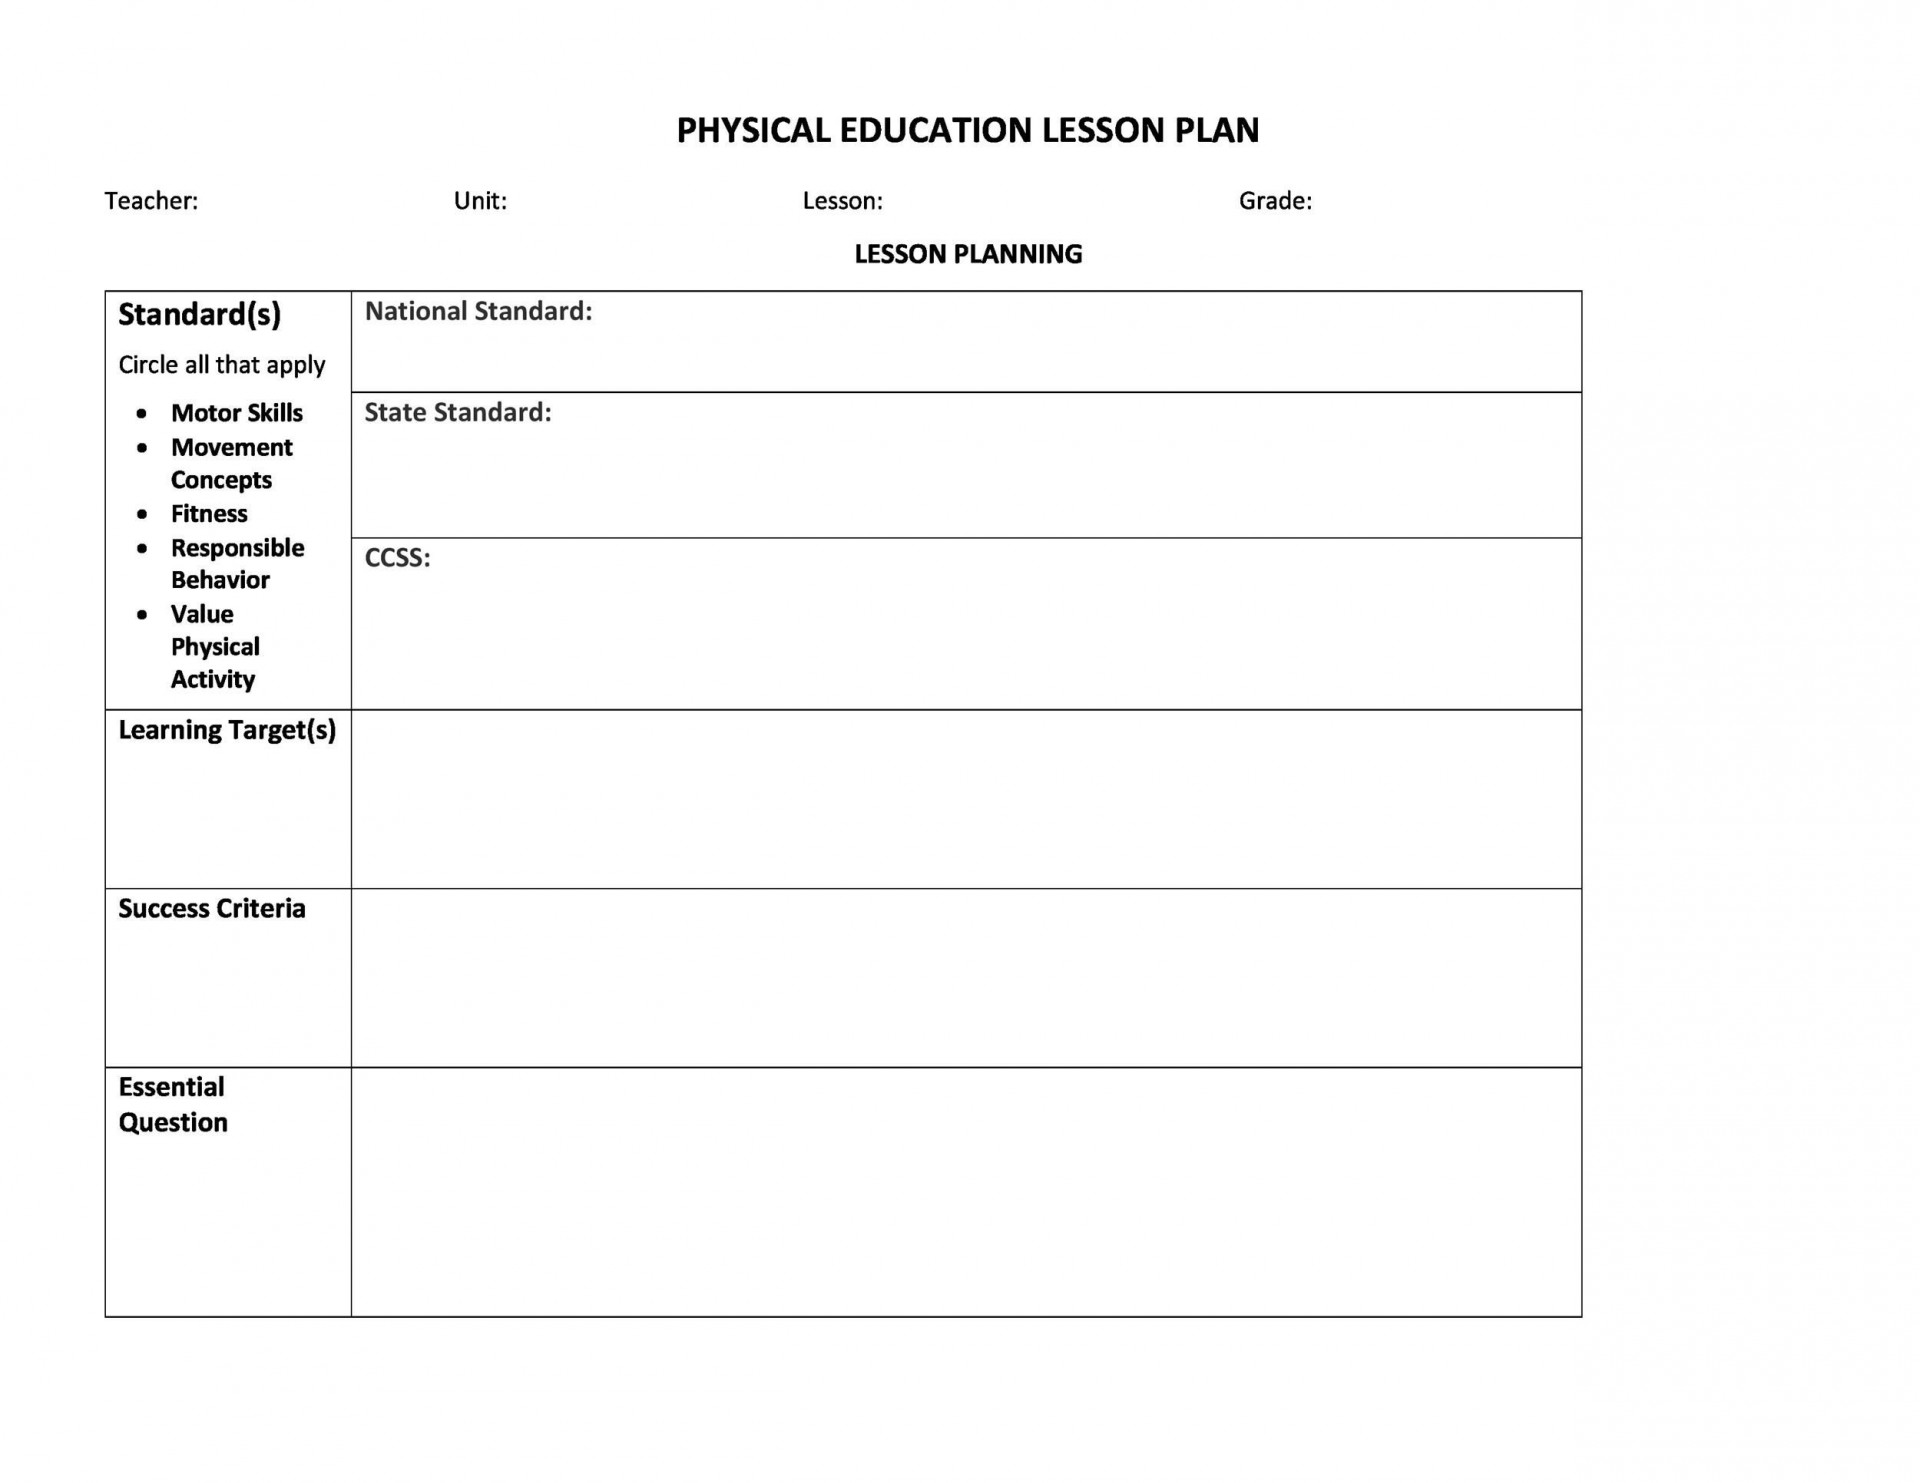 006 Incredible Physical Education Lesson Plan Template Inspiration  Elementary Pdf1920